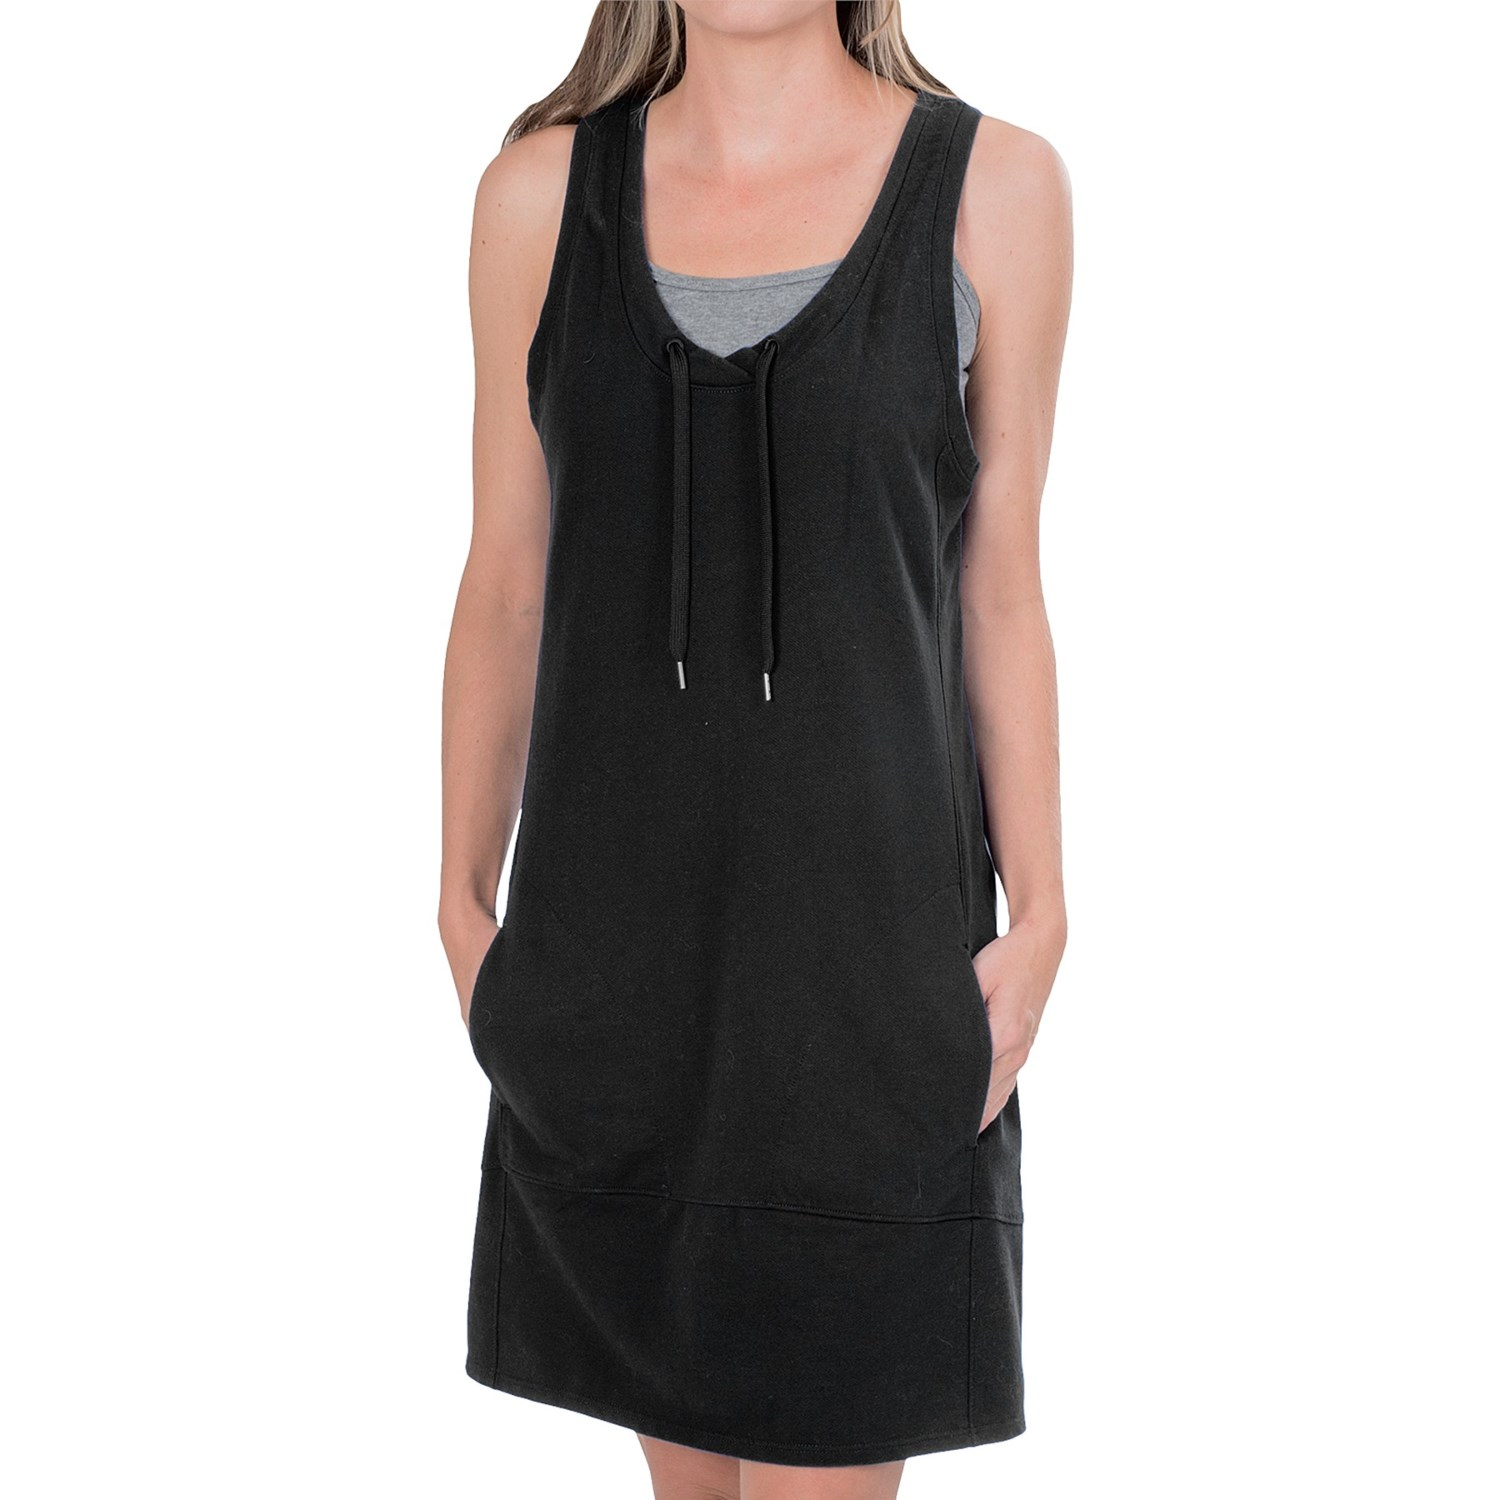 Lucy Daily Practice Yoga Dress For Women 8390g Save 67